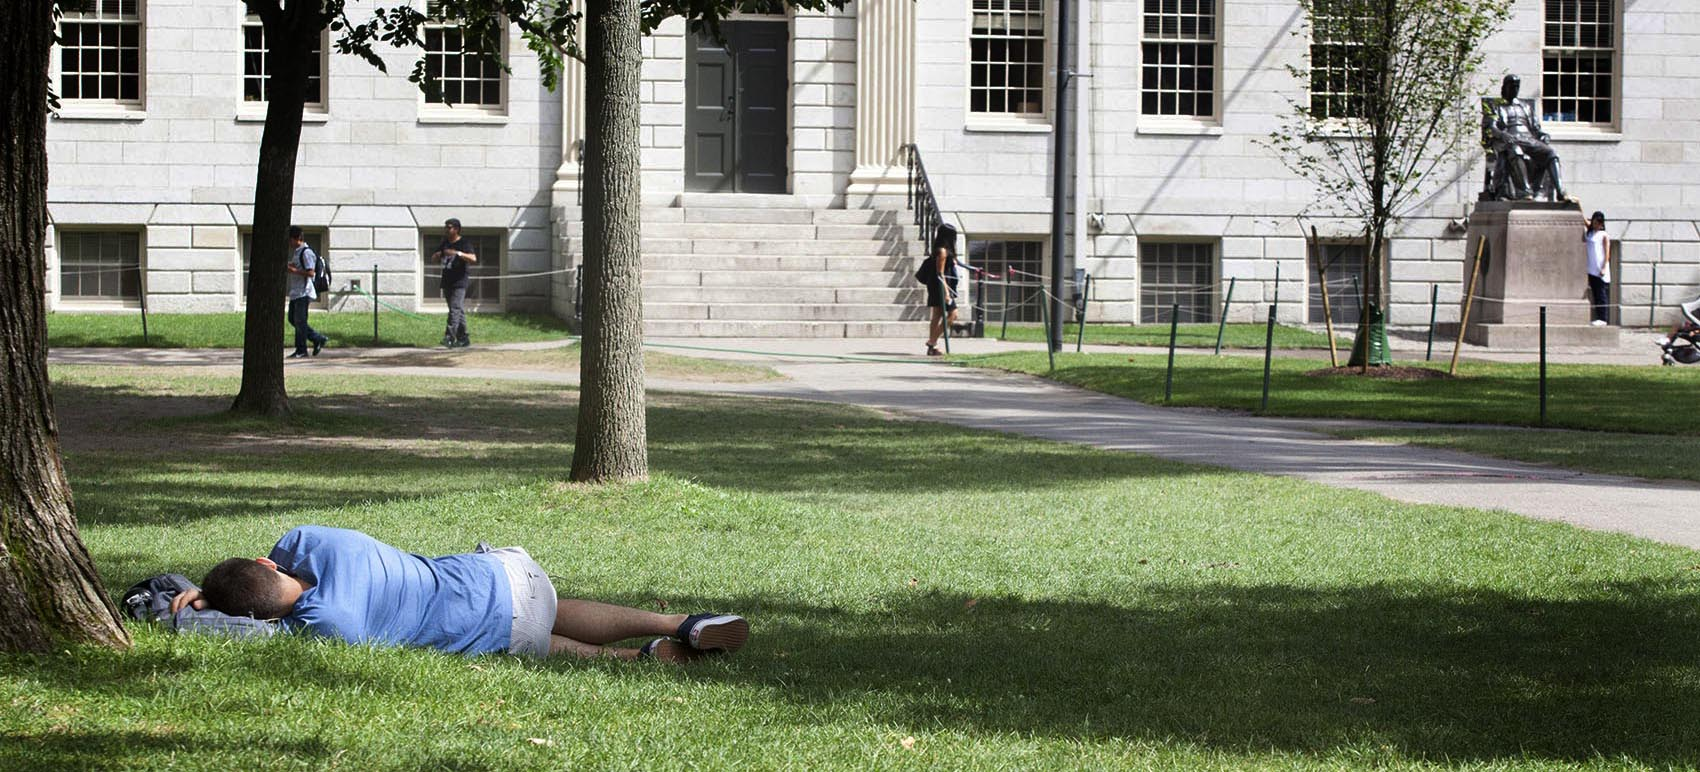 A student naps on Harvard Yard, not far from the statue of John Harvard. (Joe Difazio for WBUR)